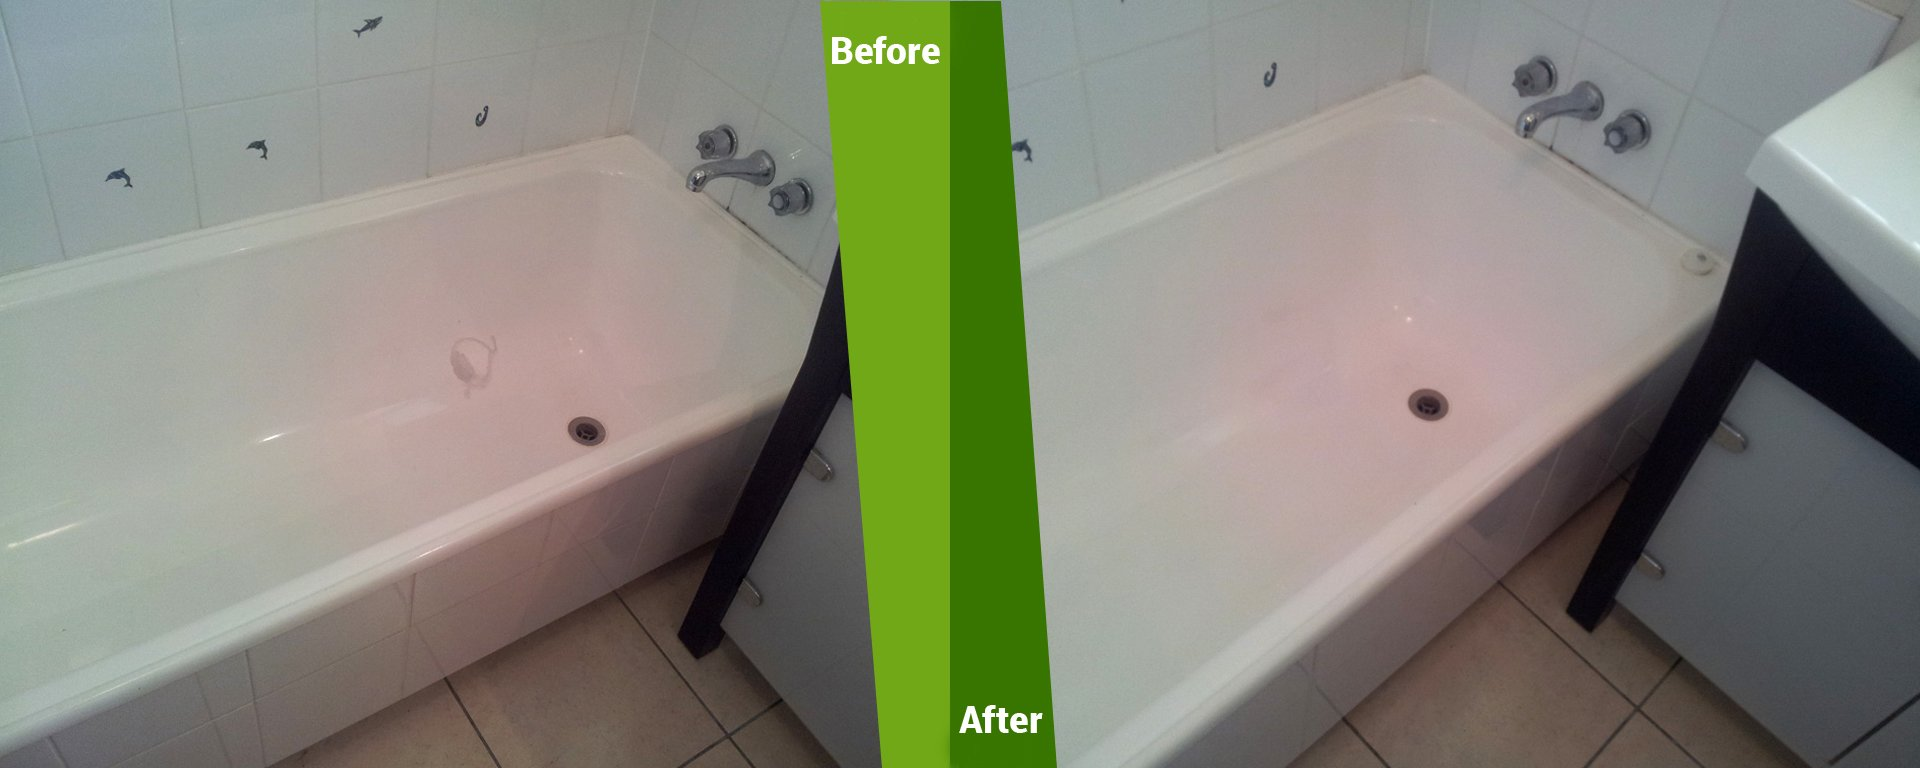 Stunning Bath Resurfacing Kit Pictures Inspiration - Bathroom with ...